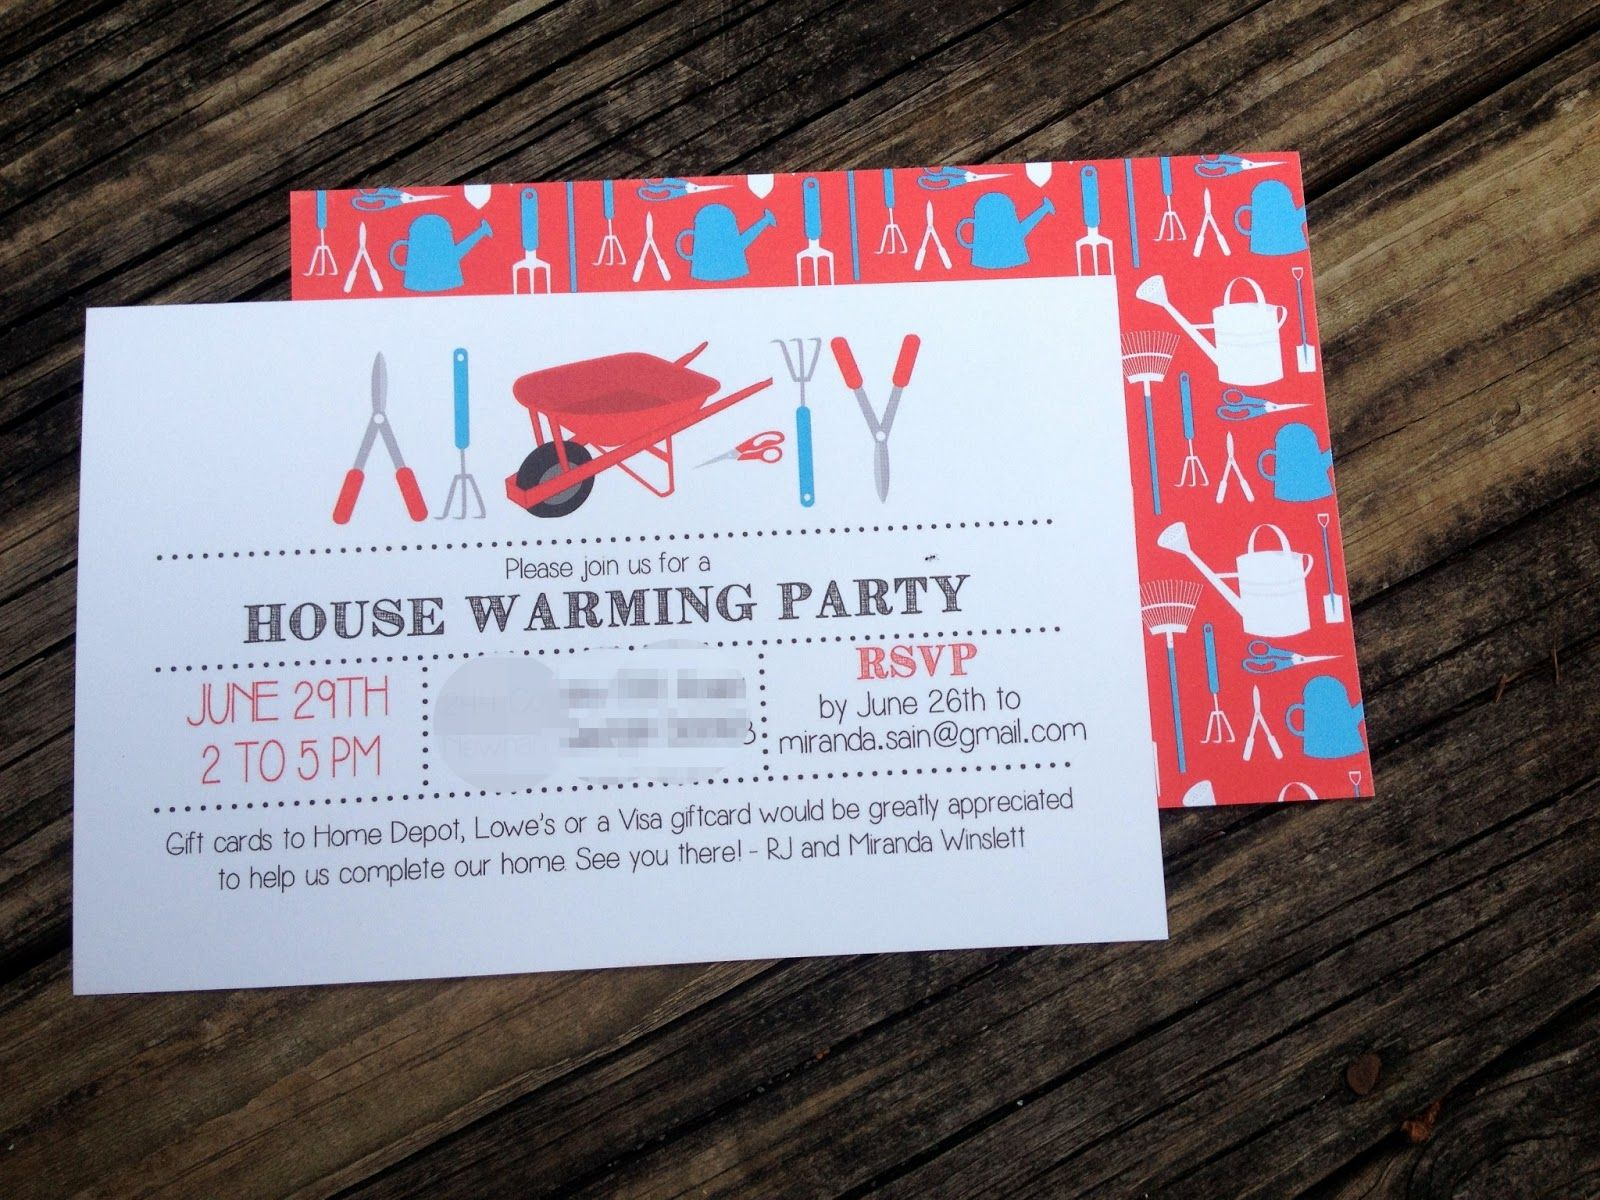 Housewarming Party Invitation Asking For Gifts and housewarming ...